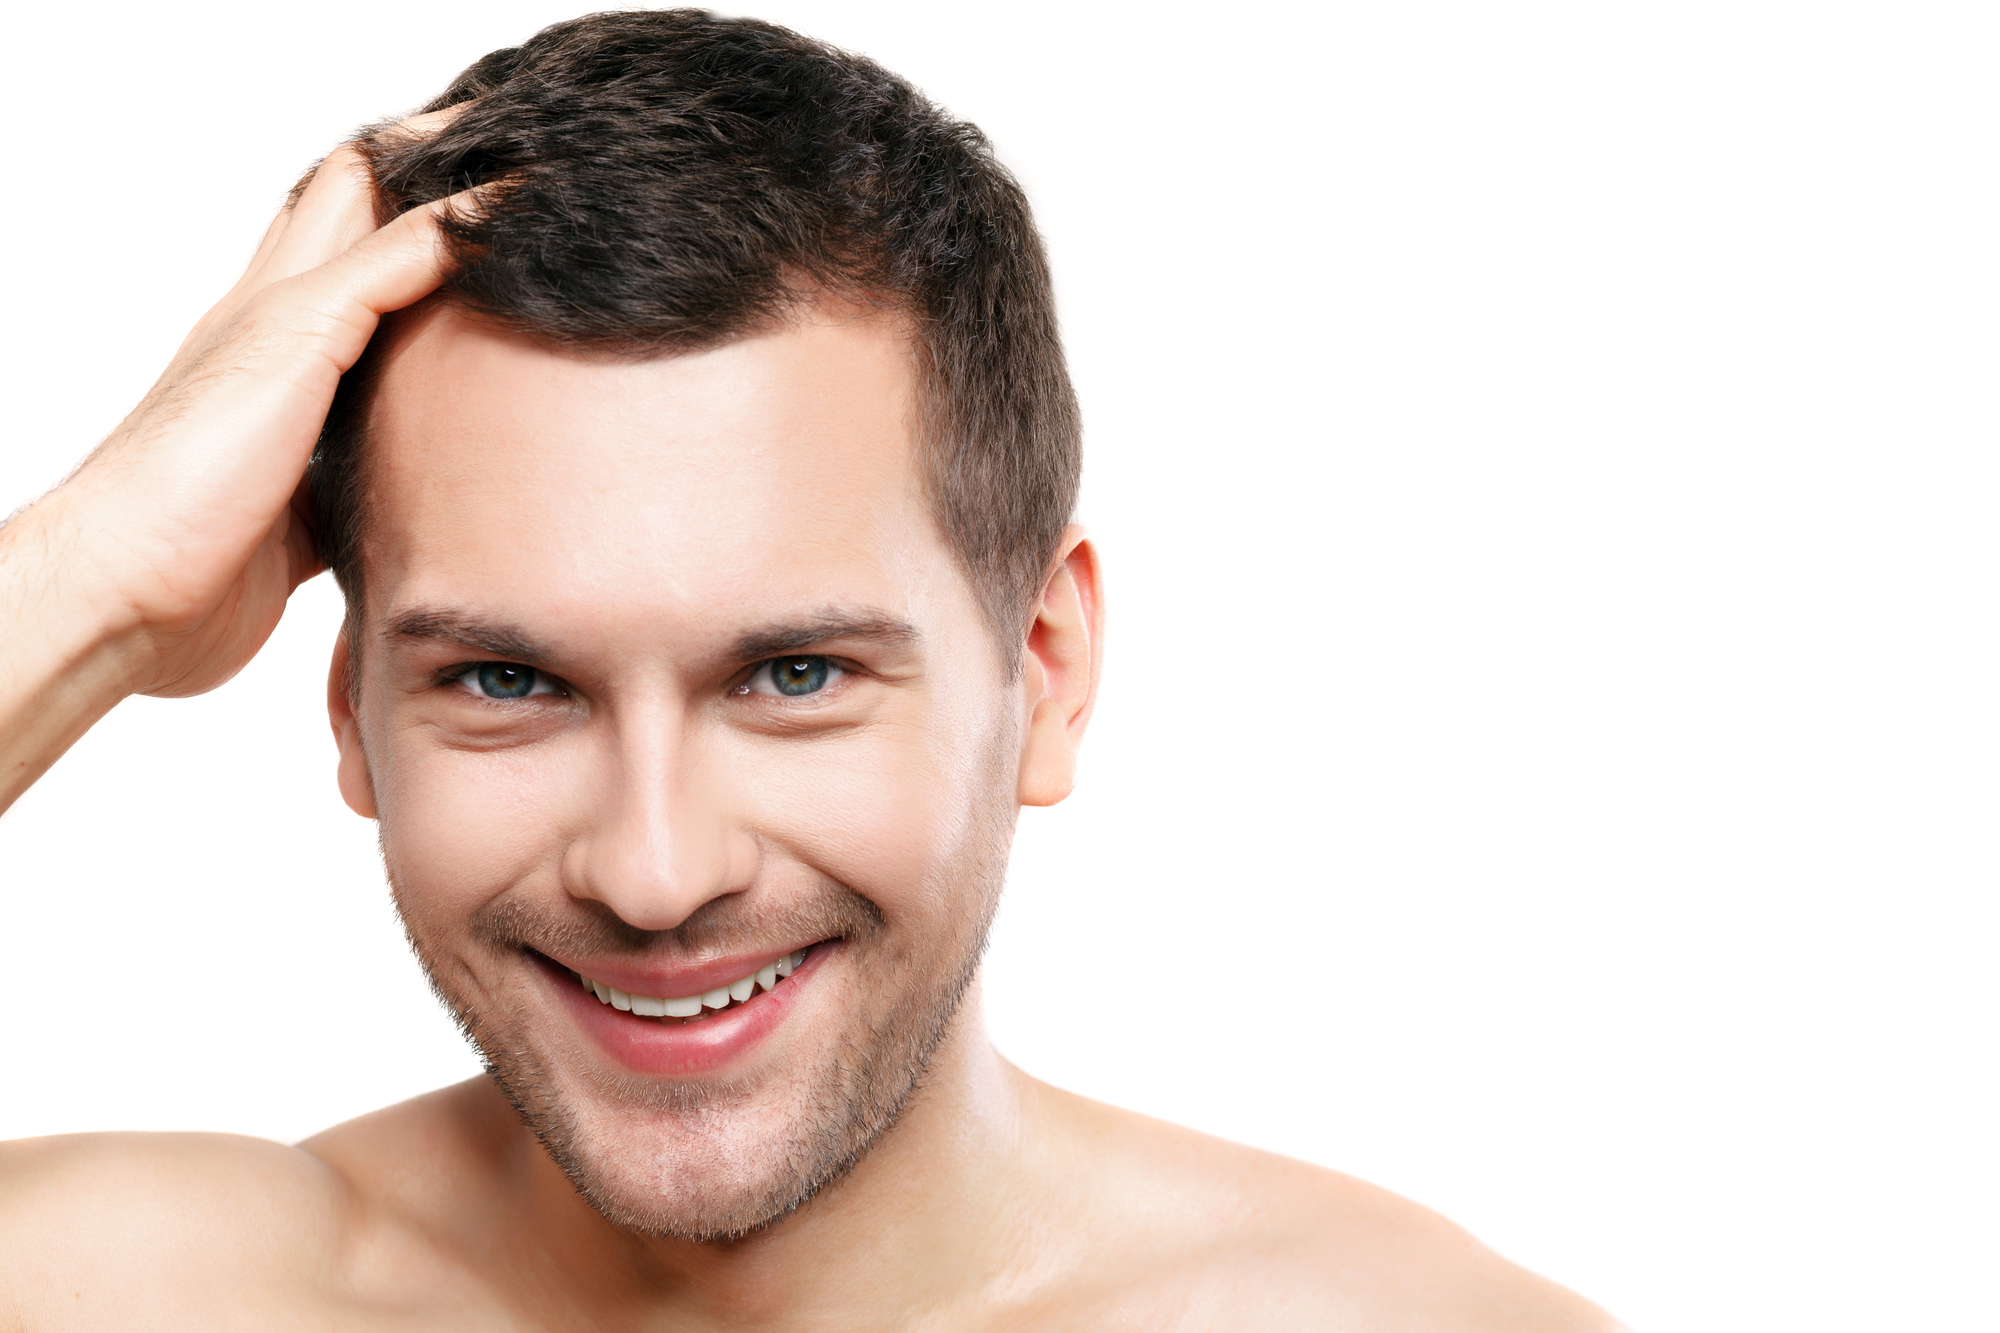 Portrait of attractive young man touching his hair and smiling. He is standing and looking at camera happily. Isolated and copy space in right side